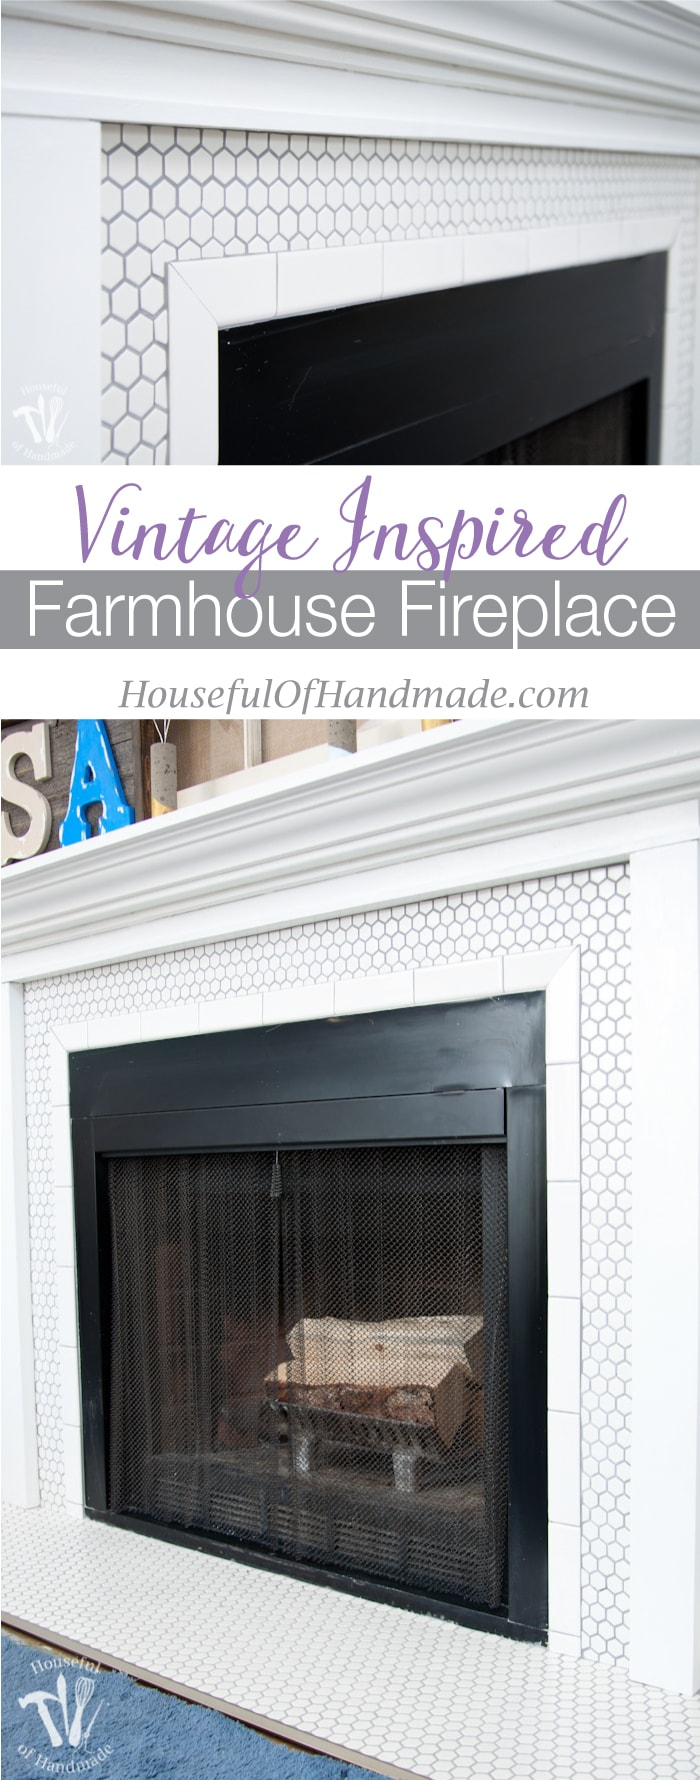 Build Your Own Fireplace Insert Vintage Inspired Farmhouse Fireplace Reveal Houseful Of Handmade